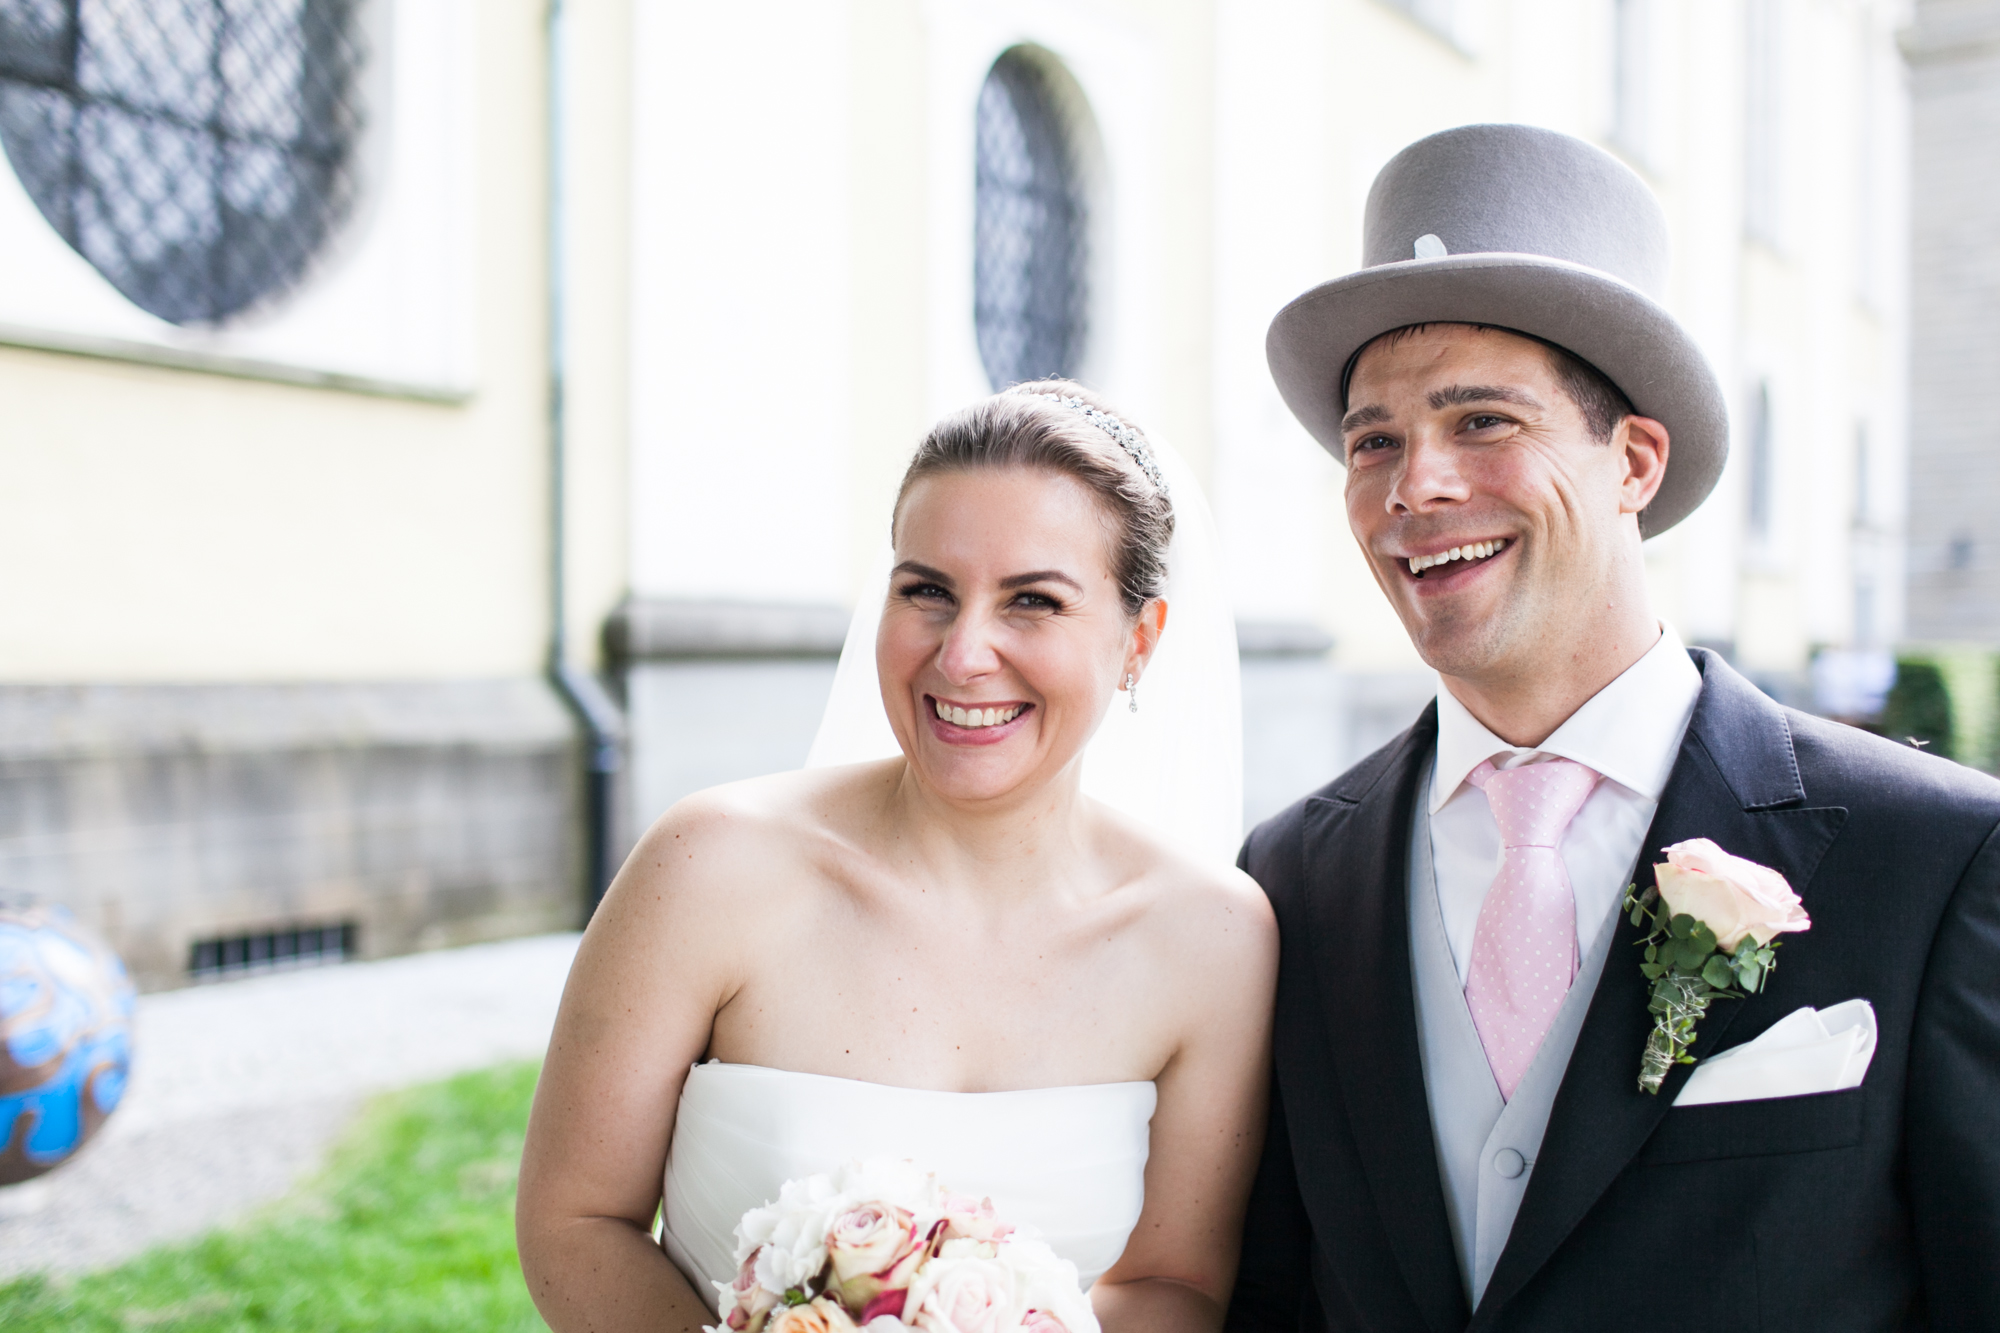 Fotograf Konstanz - Hochzeit Raphaela Phillip 057 - Wedding Story from Raphaela and Phillip at Lake of Constance  - 120 -